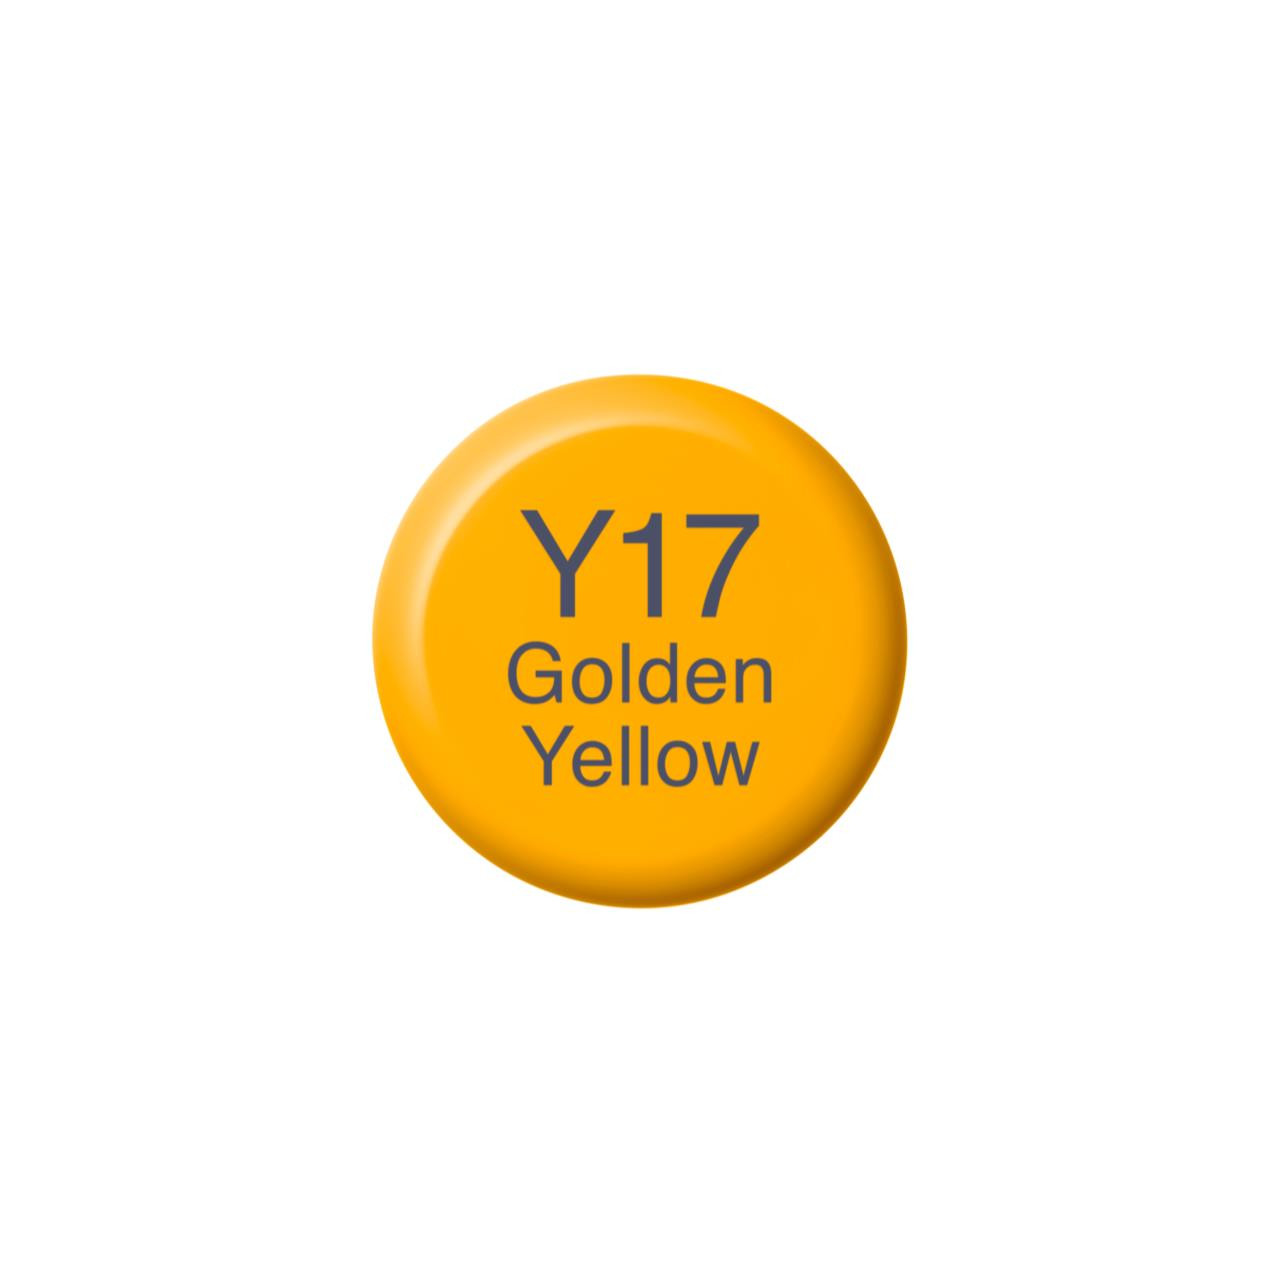 Y17 Golden Yellow, Copic Ink - 4511338058237